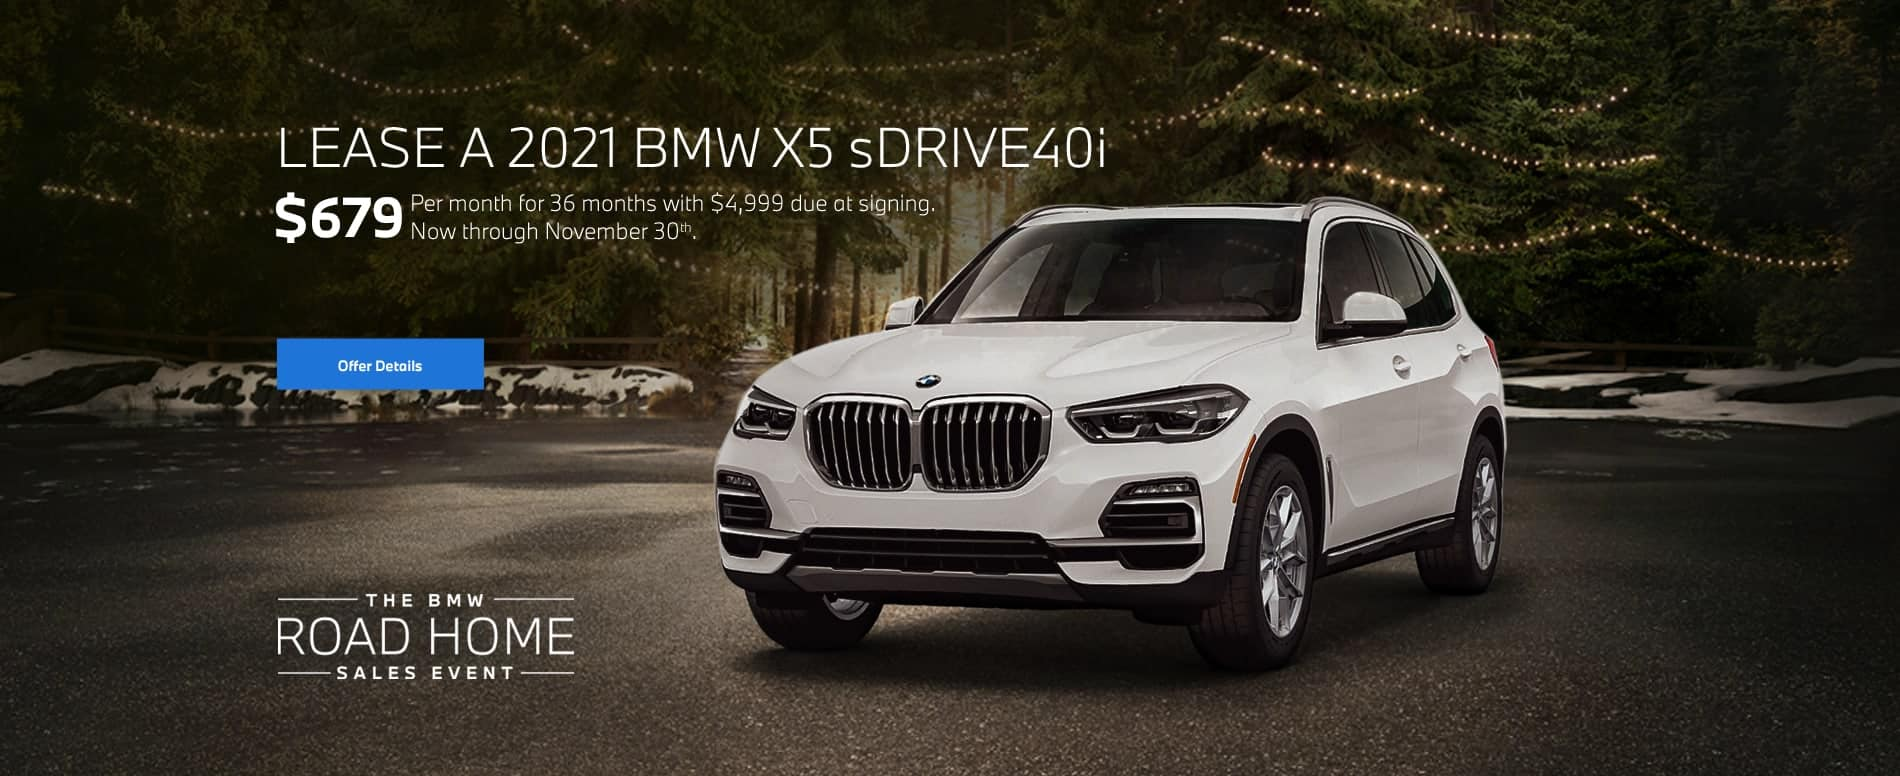 2021 BMW X5 sDrive40i Lease for $679/mo